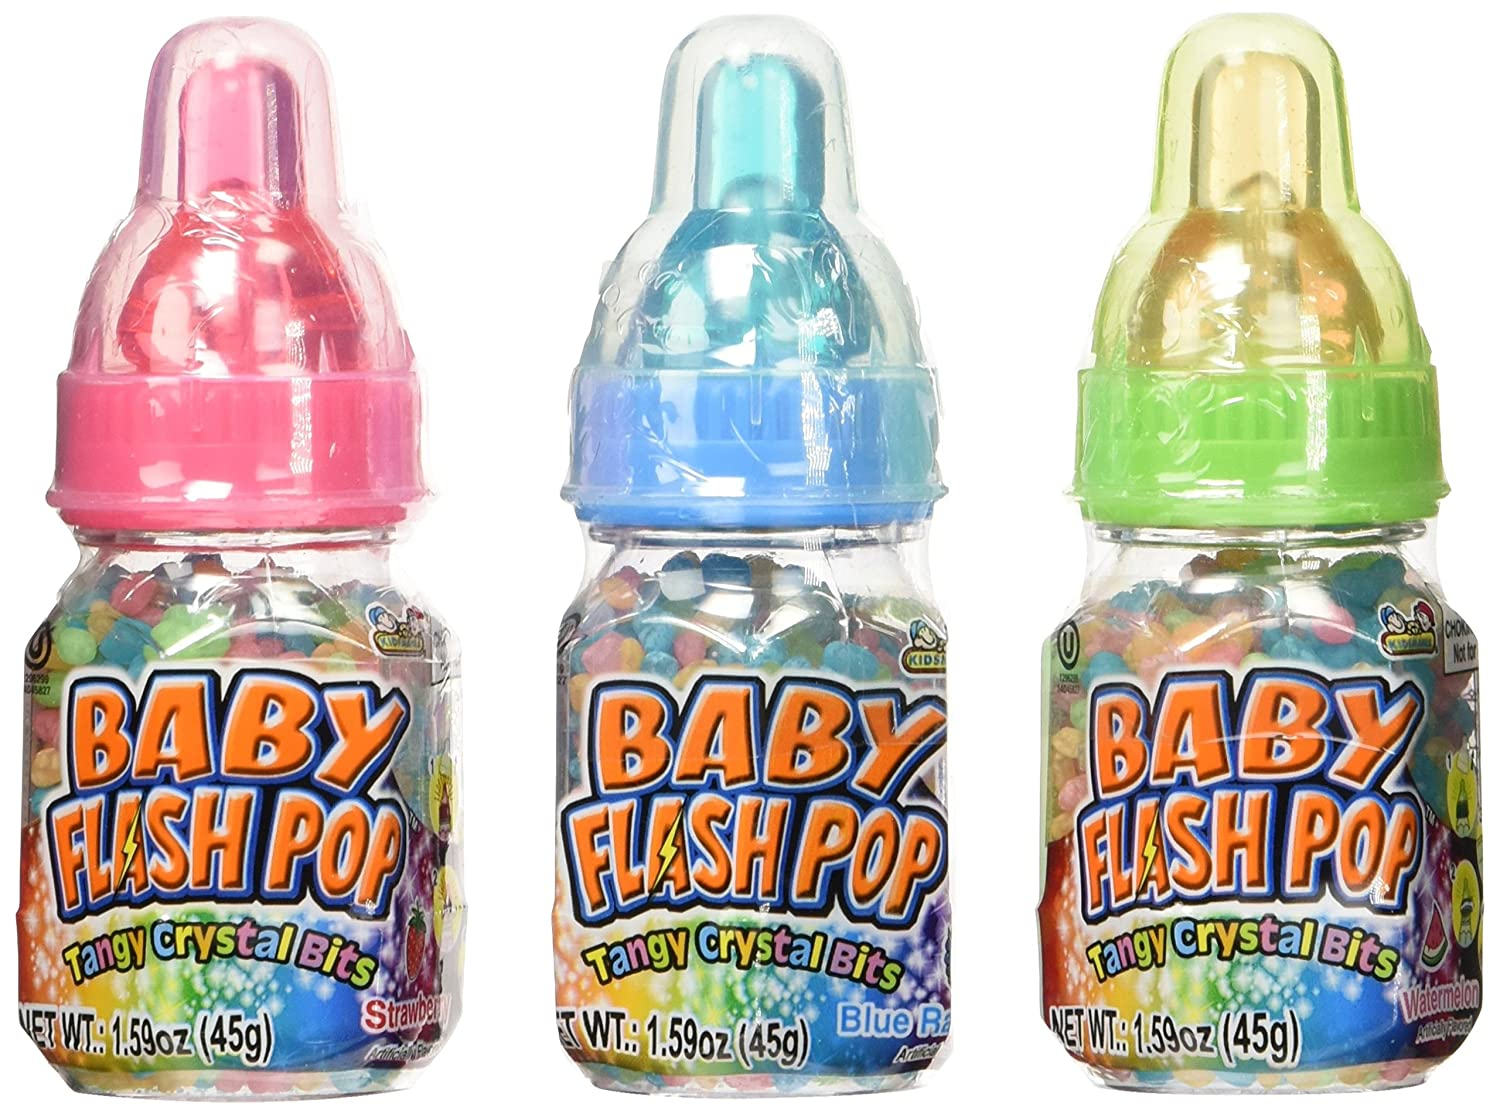 Kidsmania Baby Bottle Flash Pop 12 Units, 0.94-Kilogram Cwiner Industries LTD